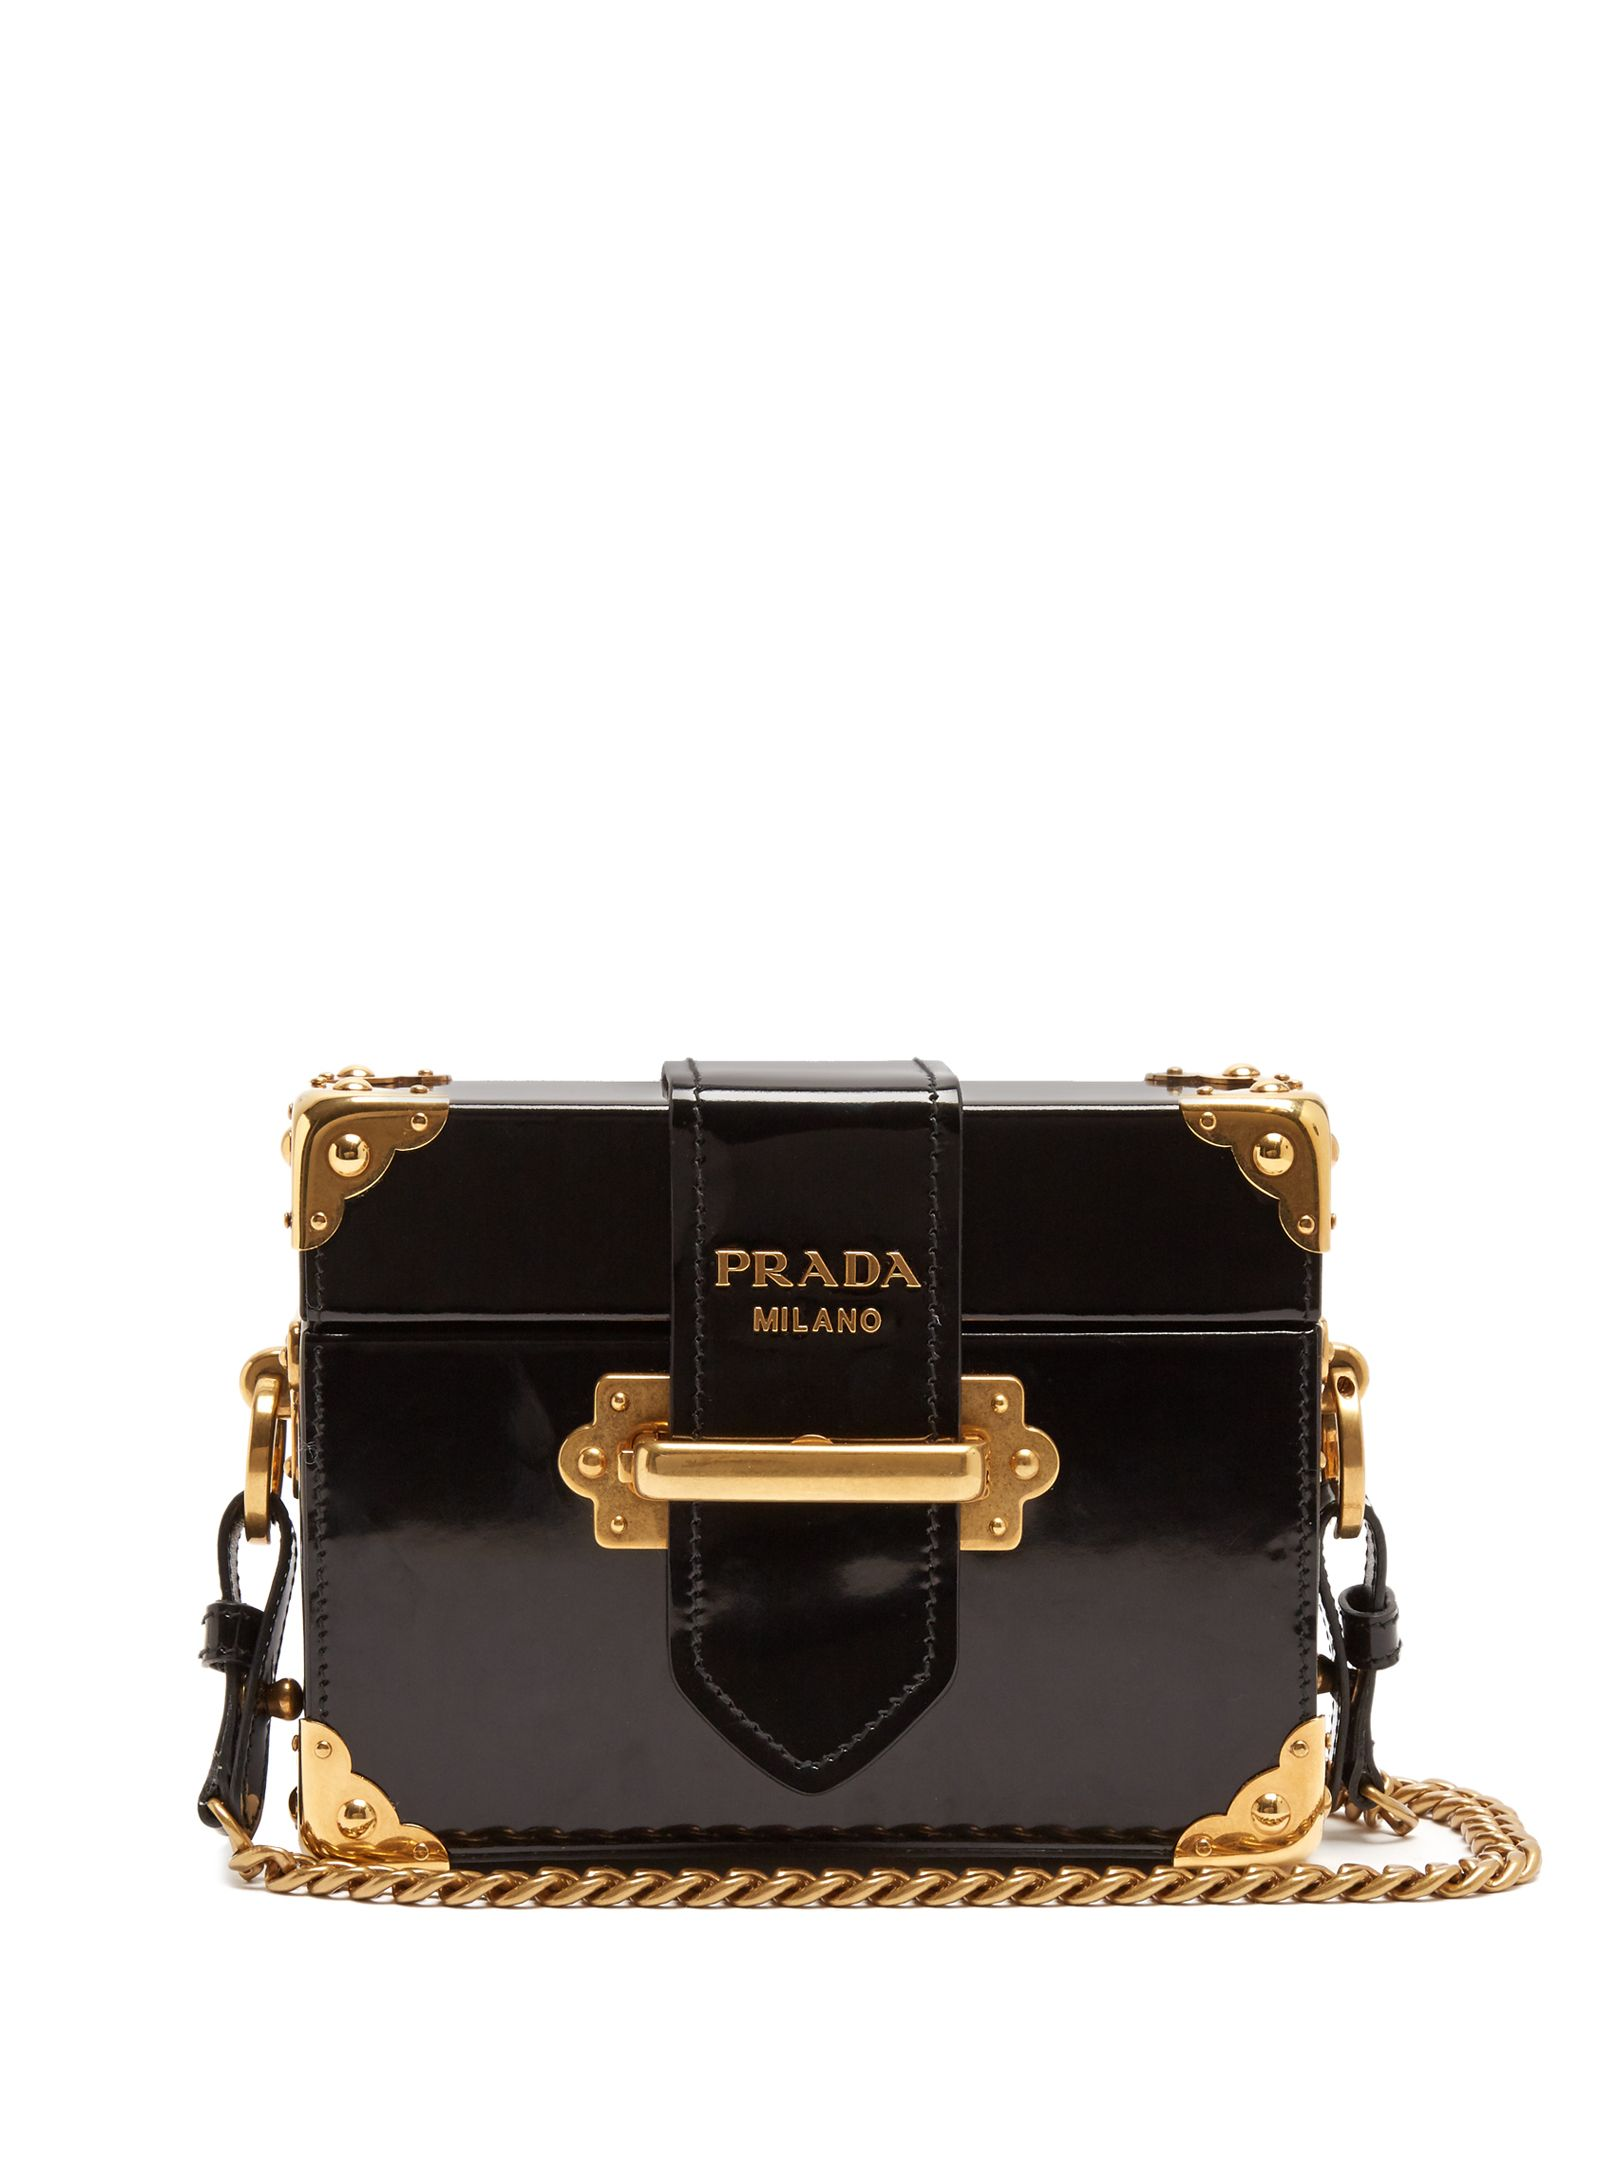 33d6e88ec25f Click here to buy Prada Treasure Trunk leather box bag at MATCHESFASHION.COM